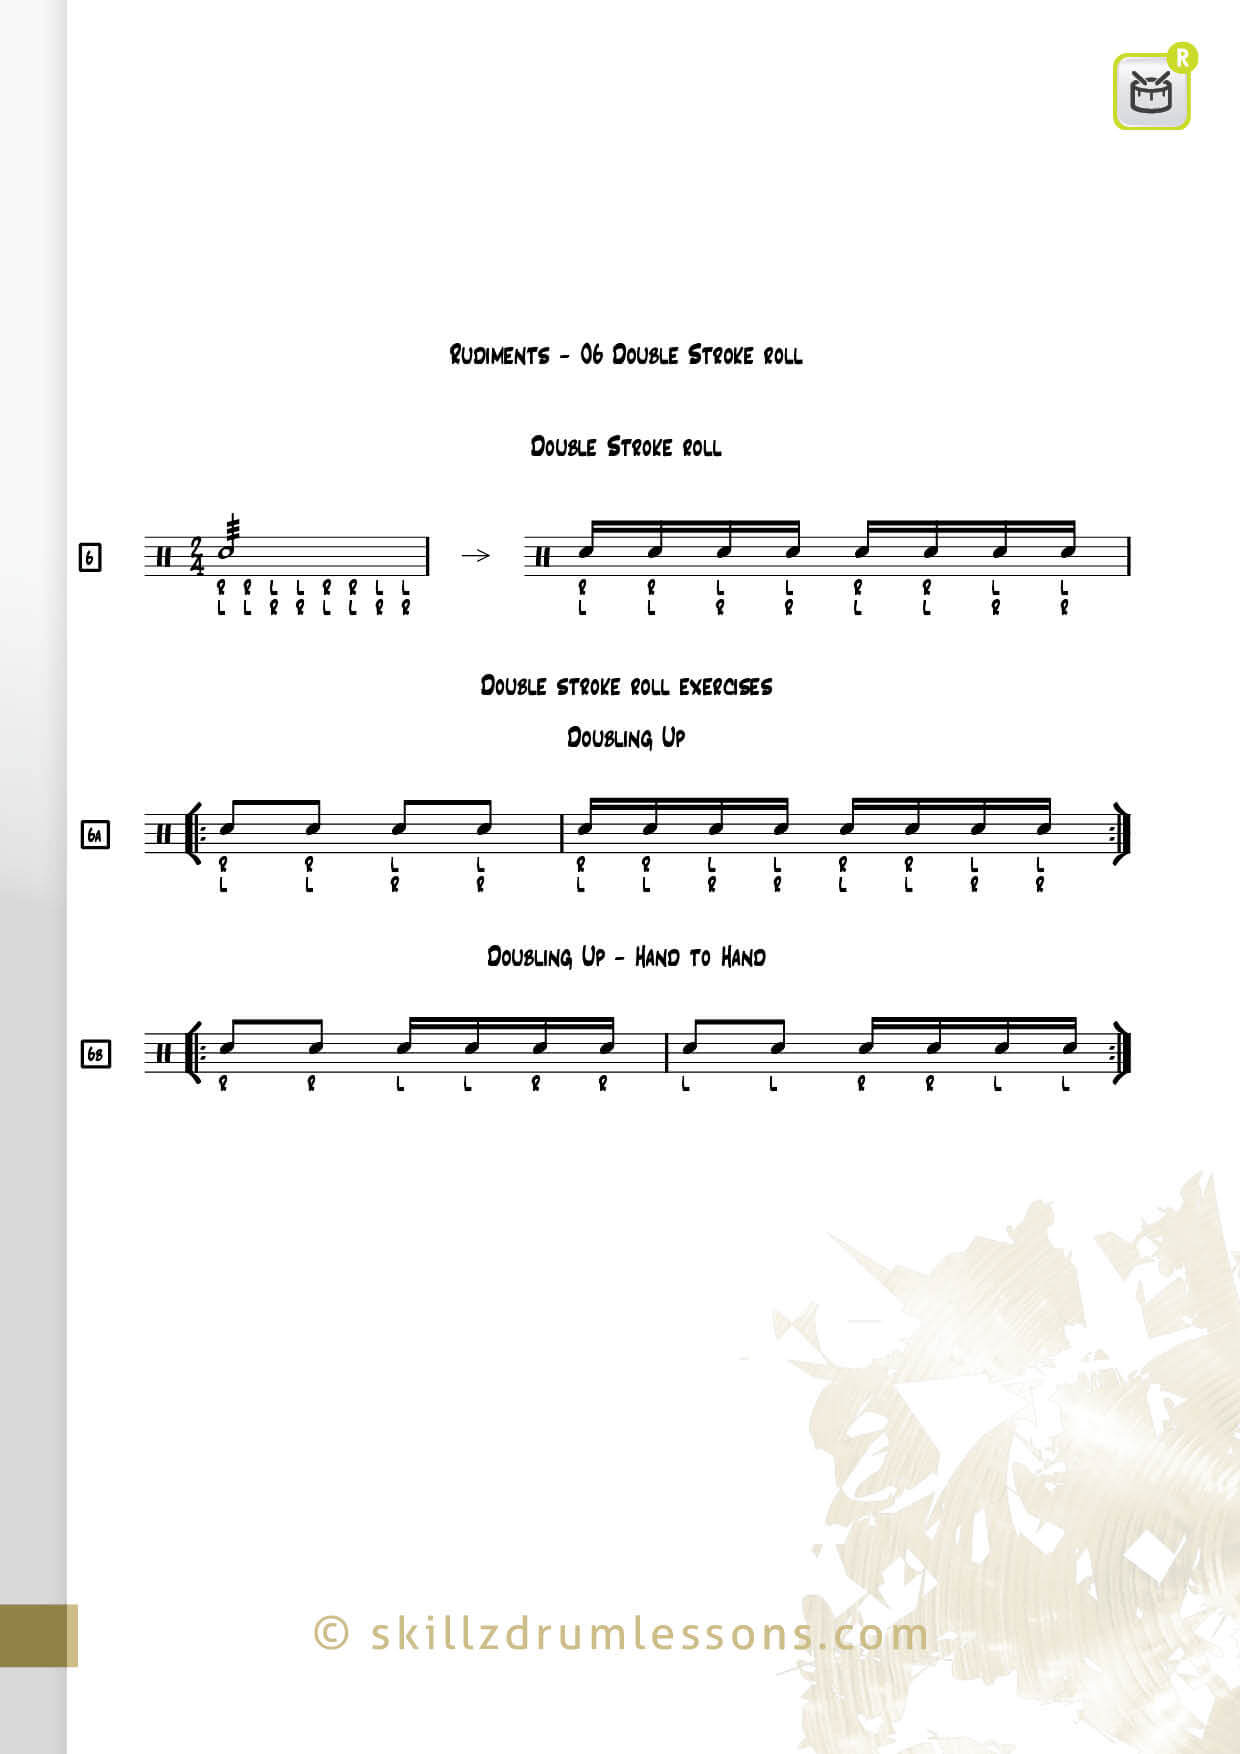 This is an image of the Official 40 Essential P.A.S. Rudiments #6 The Double Stroke Roll by Skillz Drum Lessons